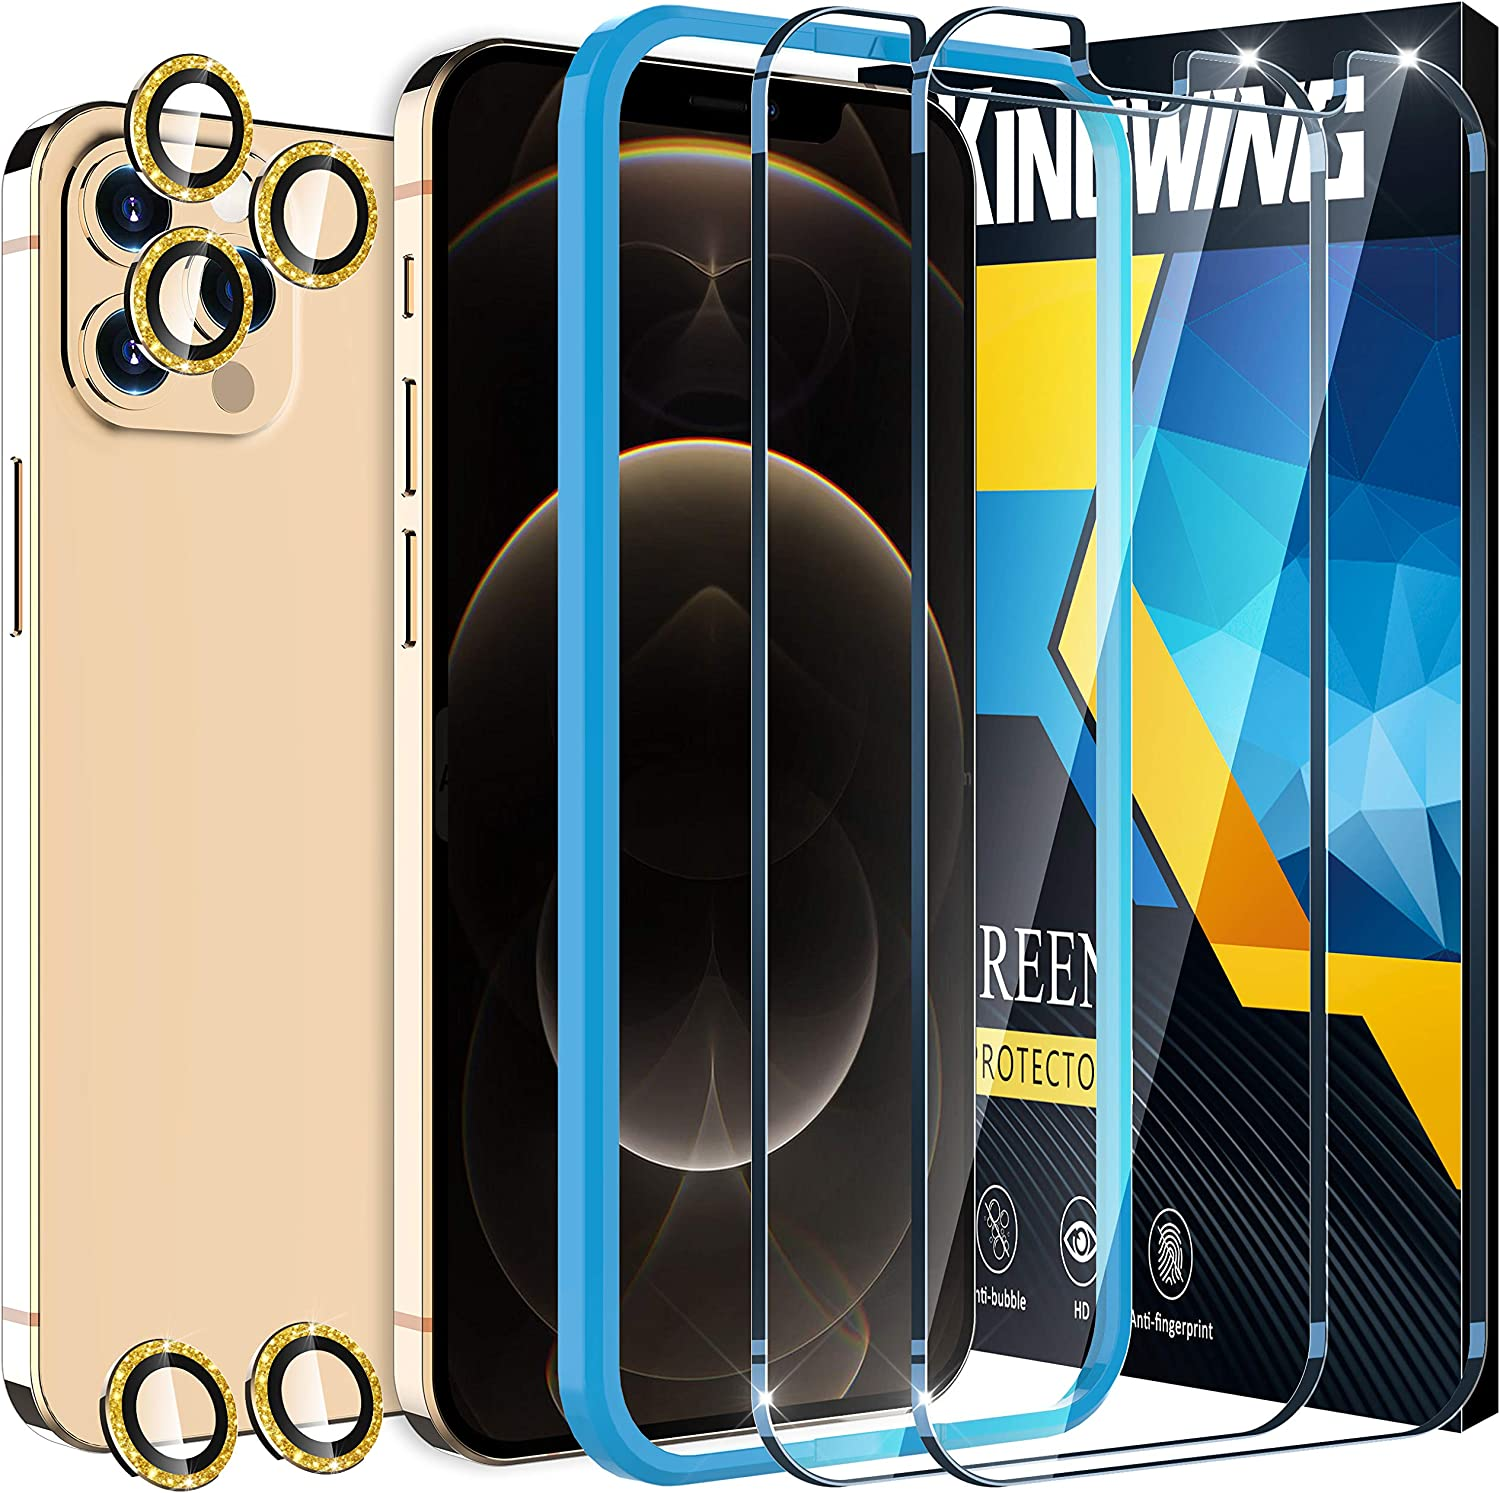 [2+5 Pack ] KINGWING Screen Protector Compatible with iPhone 12 Pro Max 5G (6.7 inch), 2 Pack Tempered Glass + 5 Pack DiamondGold Camera Lens Protector [Installation Frame] [U-Shaped Cutout]